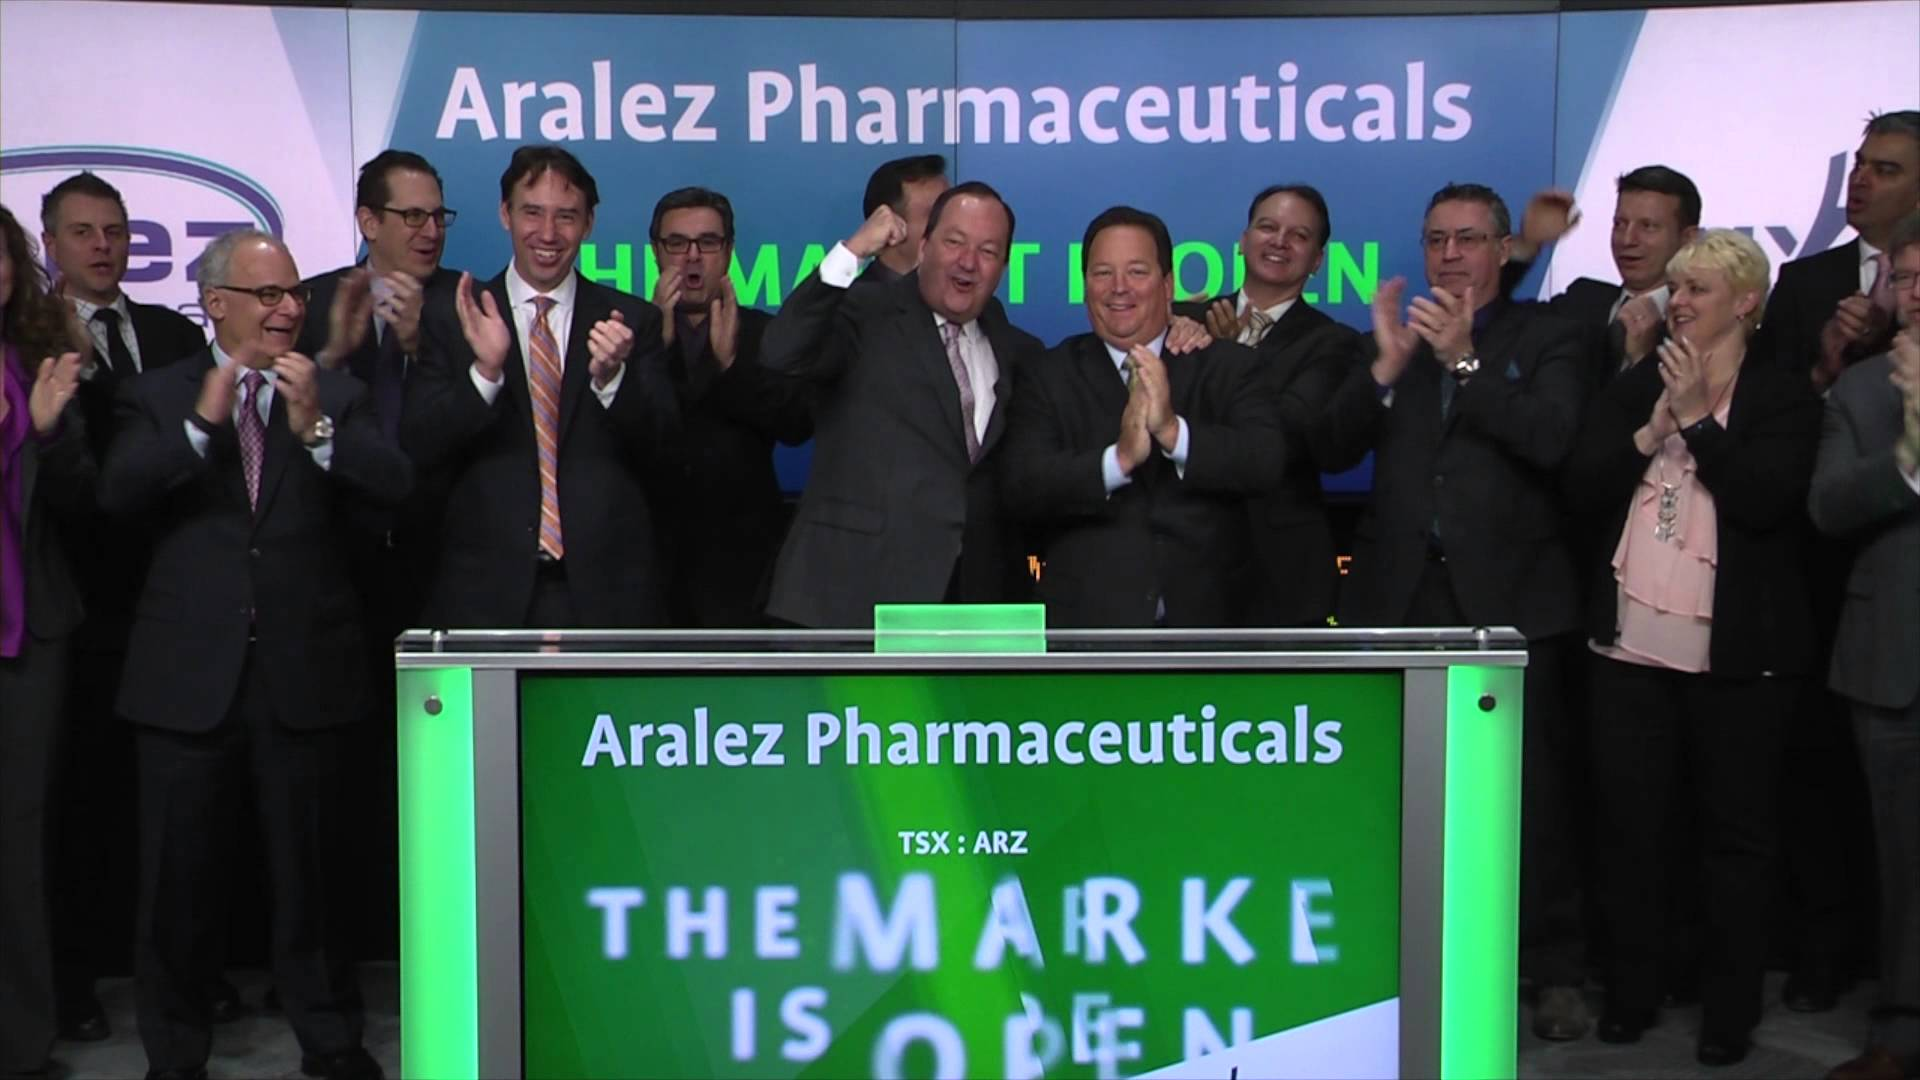 With $25M-plus Aralez deal, Merck finds a buyer for